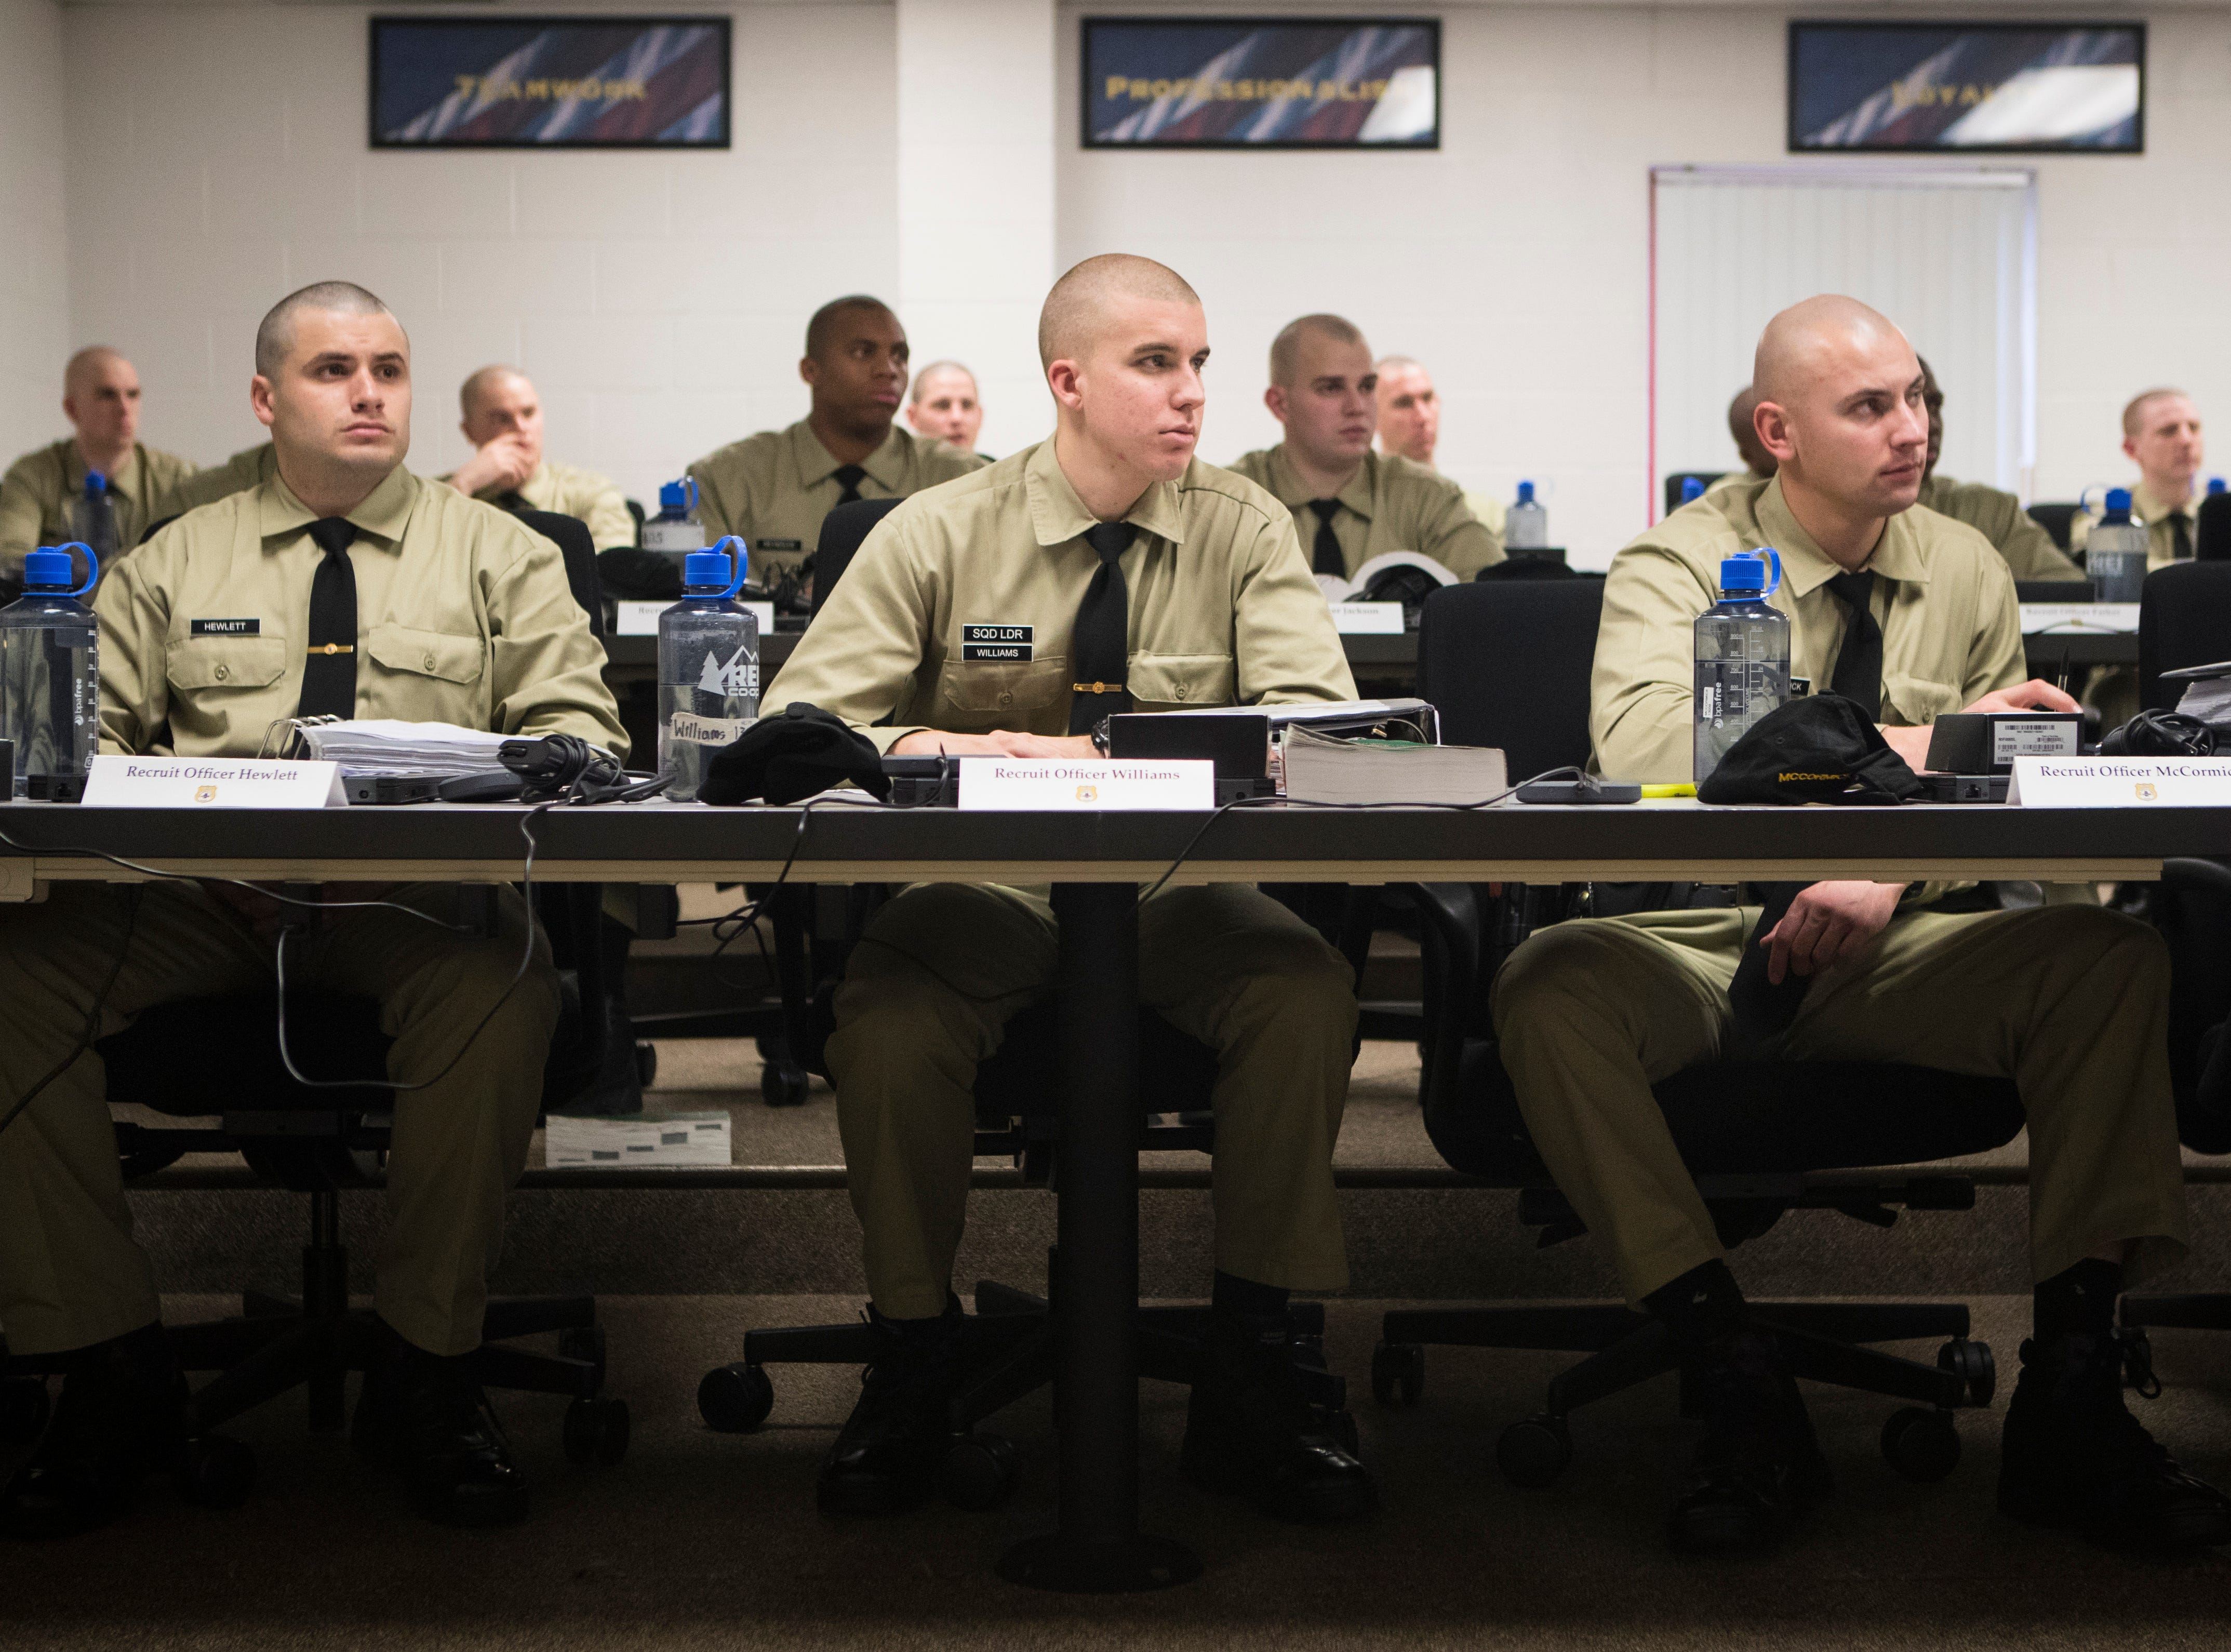 Recruits in the New Castle County Police Academy listen to instruction from Lieutenant Andrew Rubin of the Newark Police Department during a classroom session Thursday, Jan. 24, 2019 at the Lieutenant Joseph L. Szczerba Police Academy.